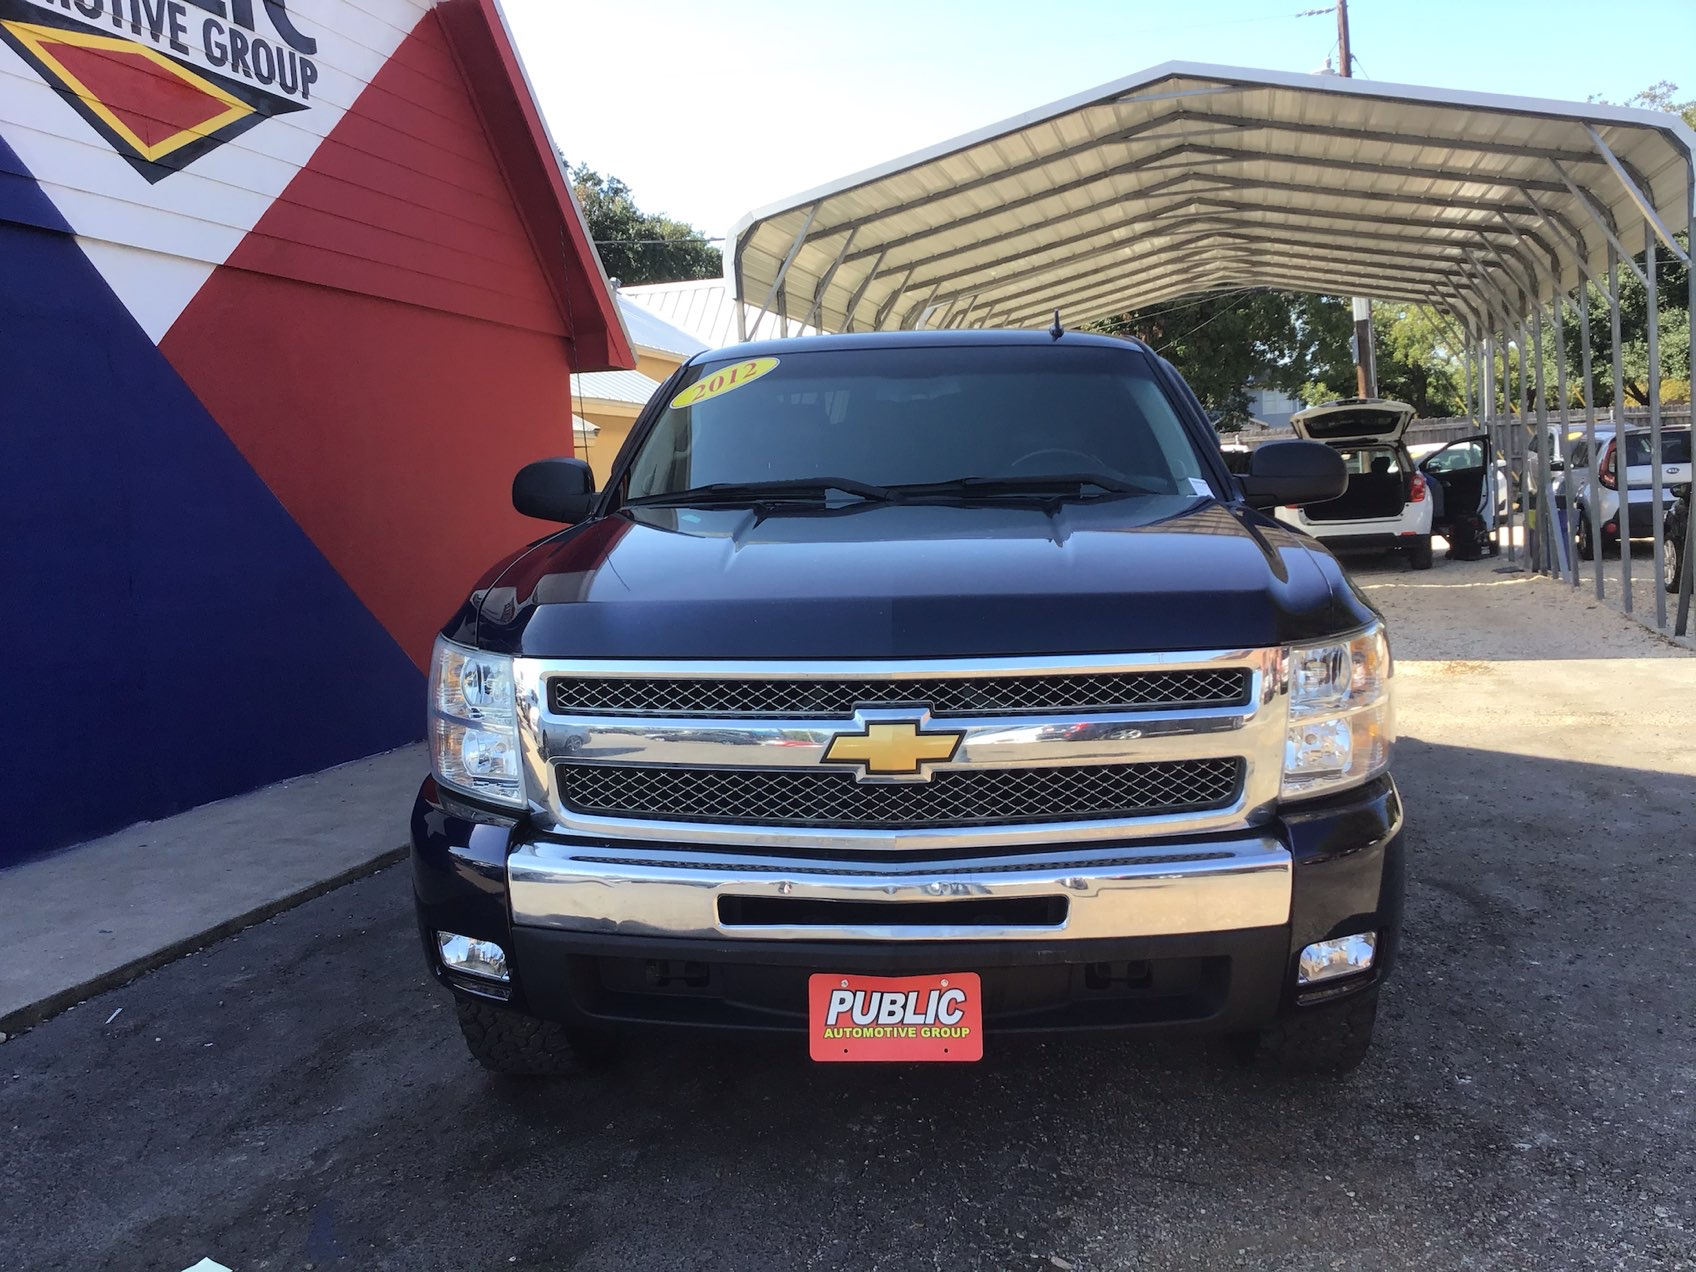 used vehicle - Truck CHEVROLET SILVERADO 1500 2012